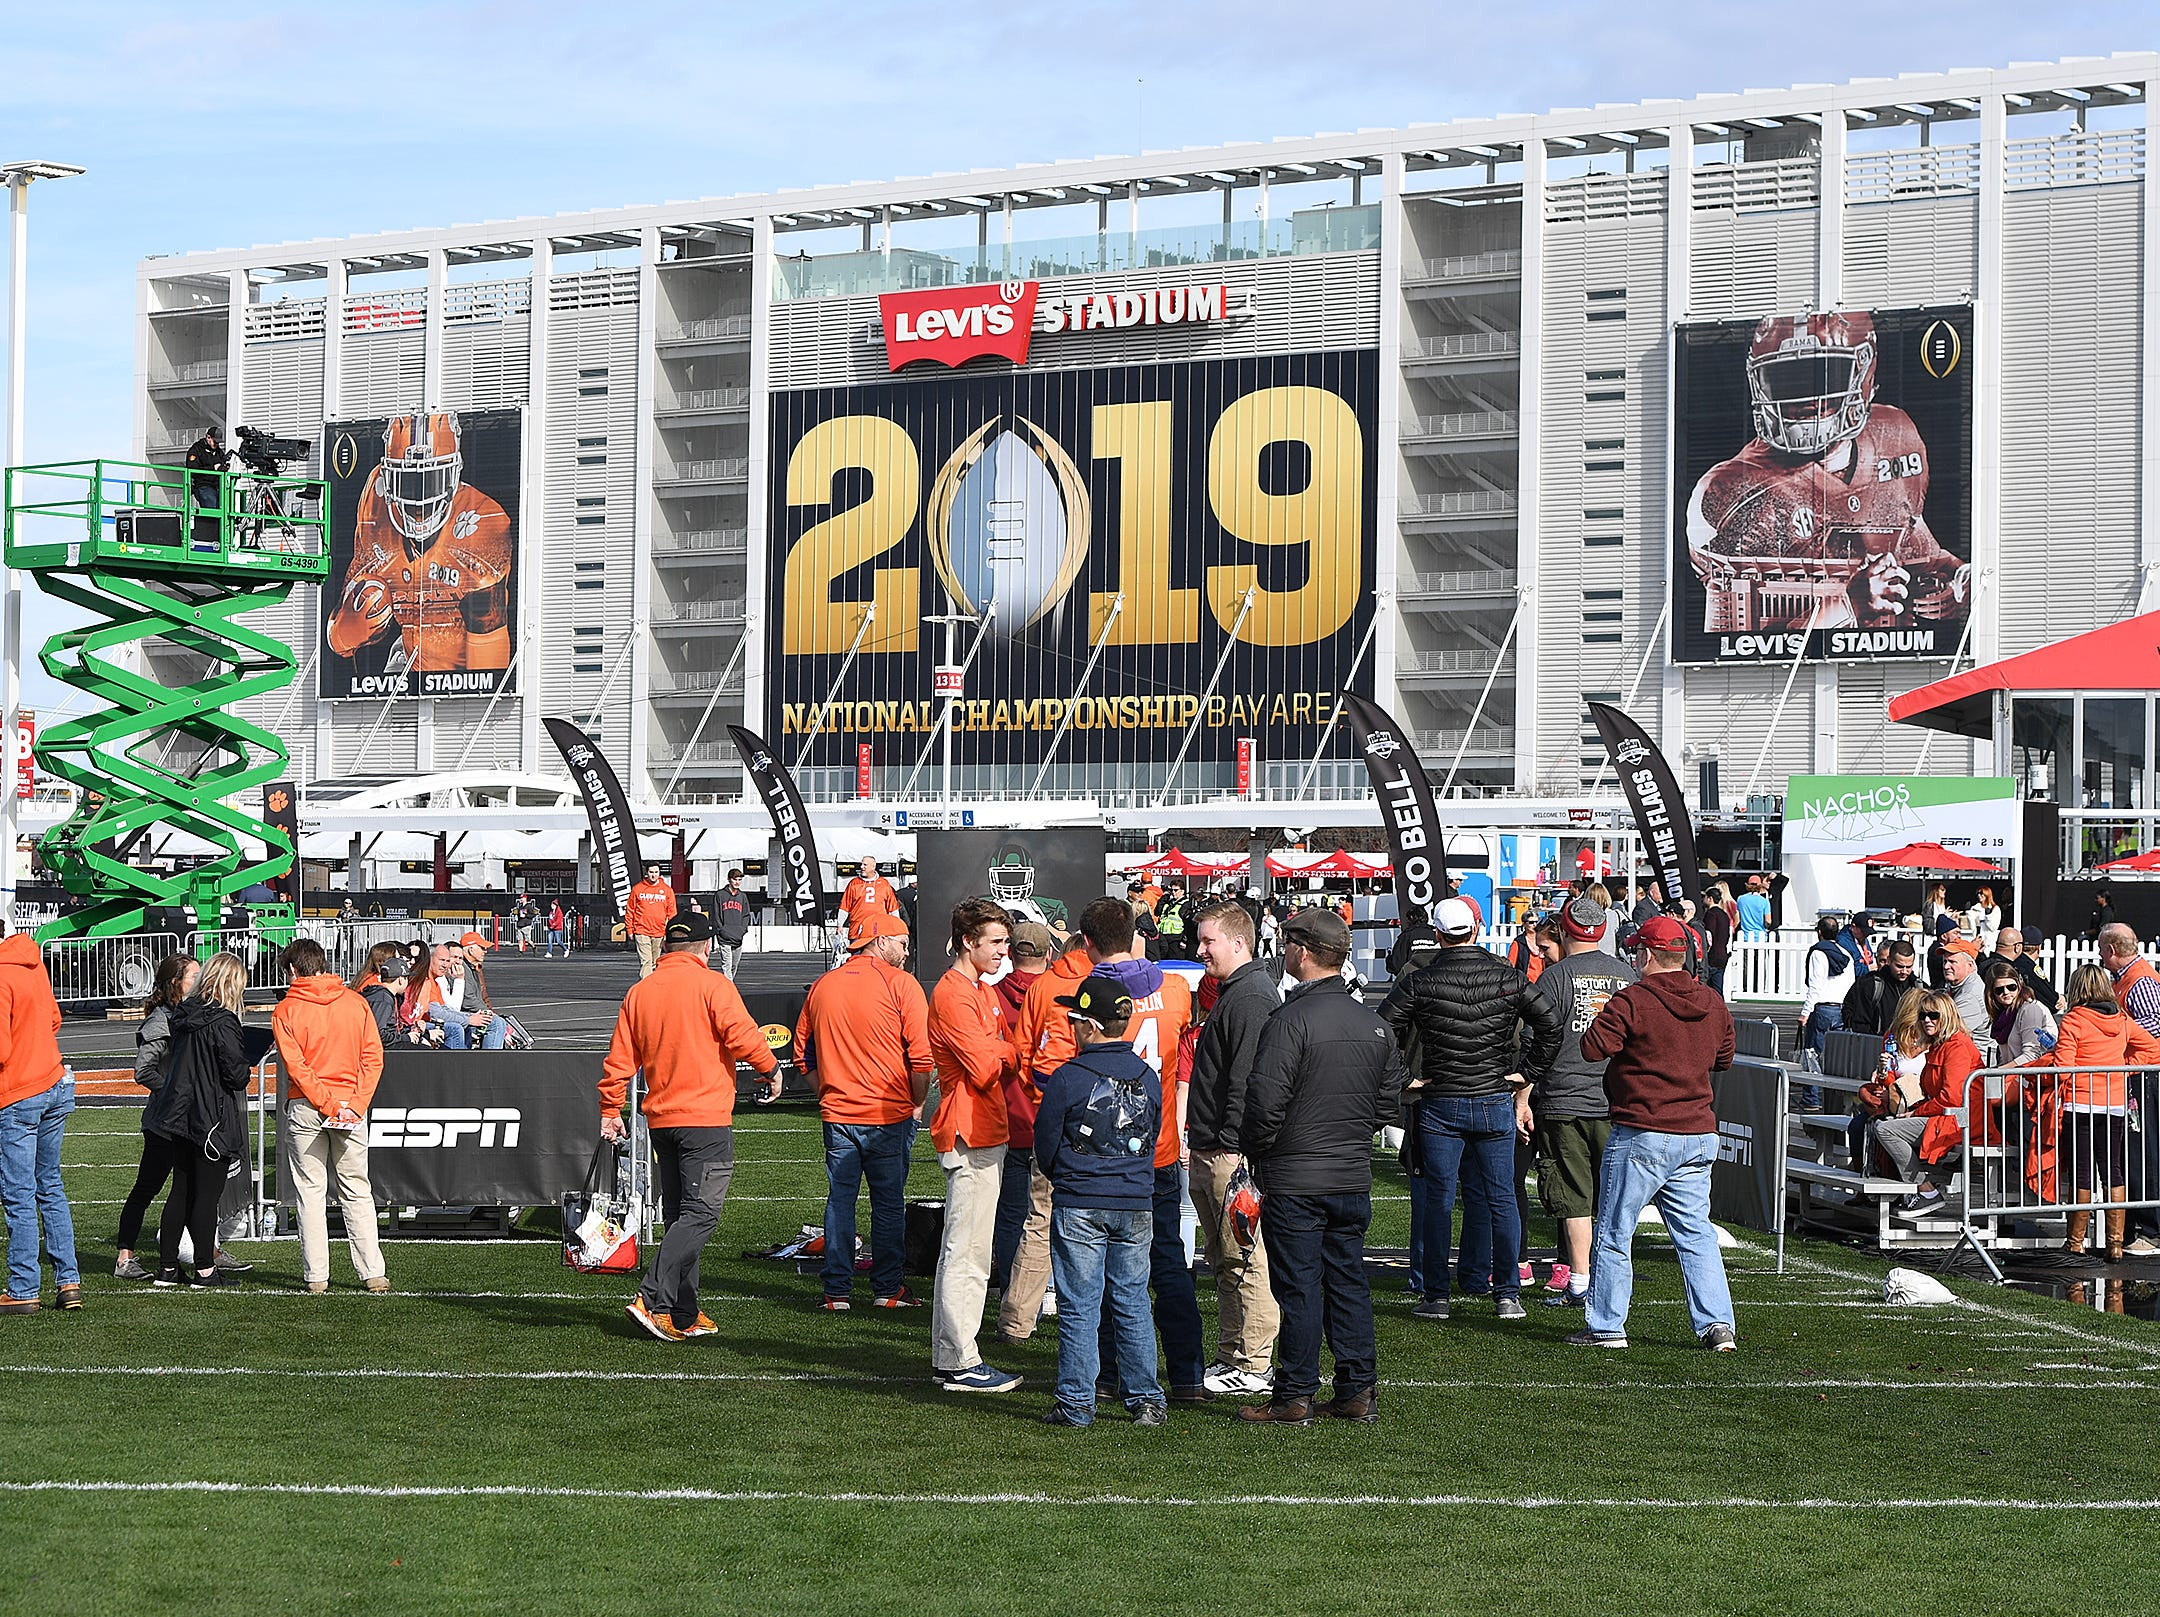 The College Football Championship Playoff Tailgate outside Levi's Stadium in Santa Clara, CA Monday, January 7, 2019.